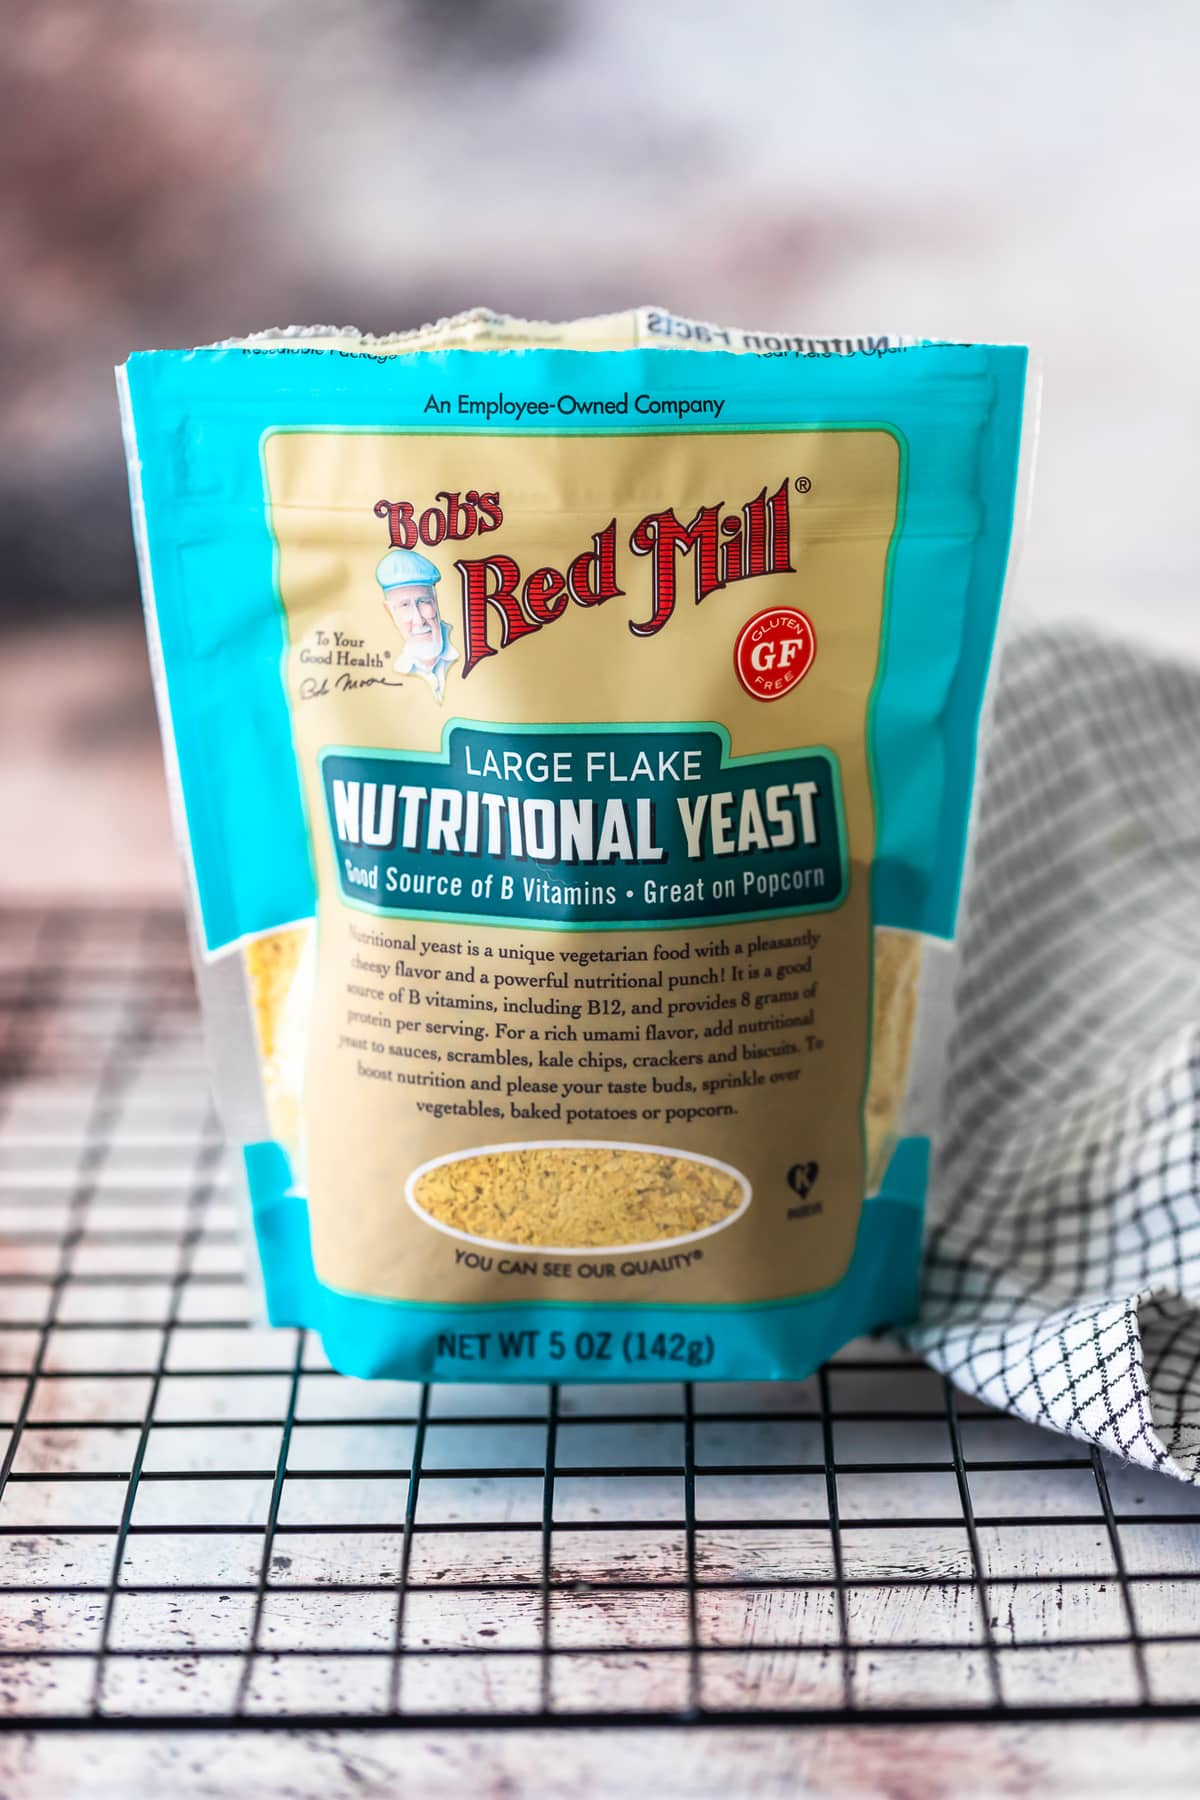 bag of Bob's Red Mill nutritional yeast